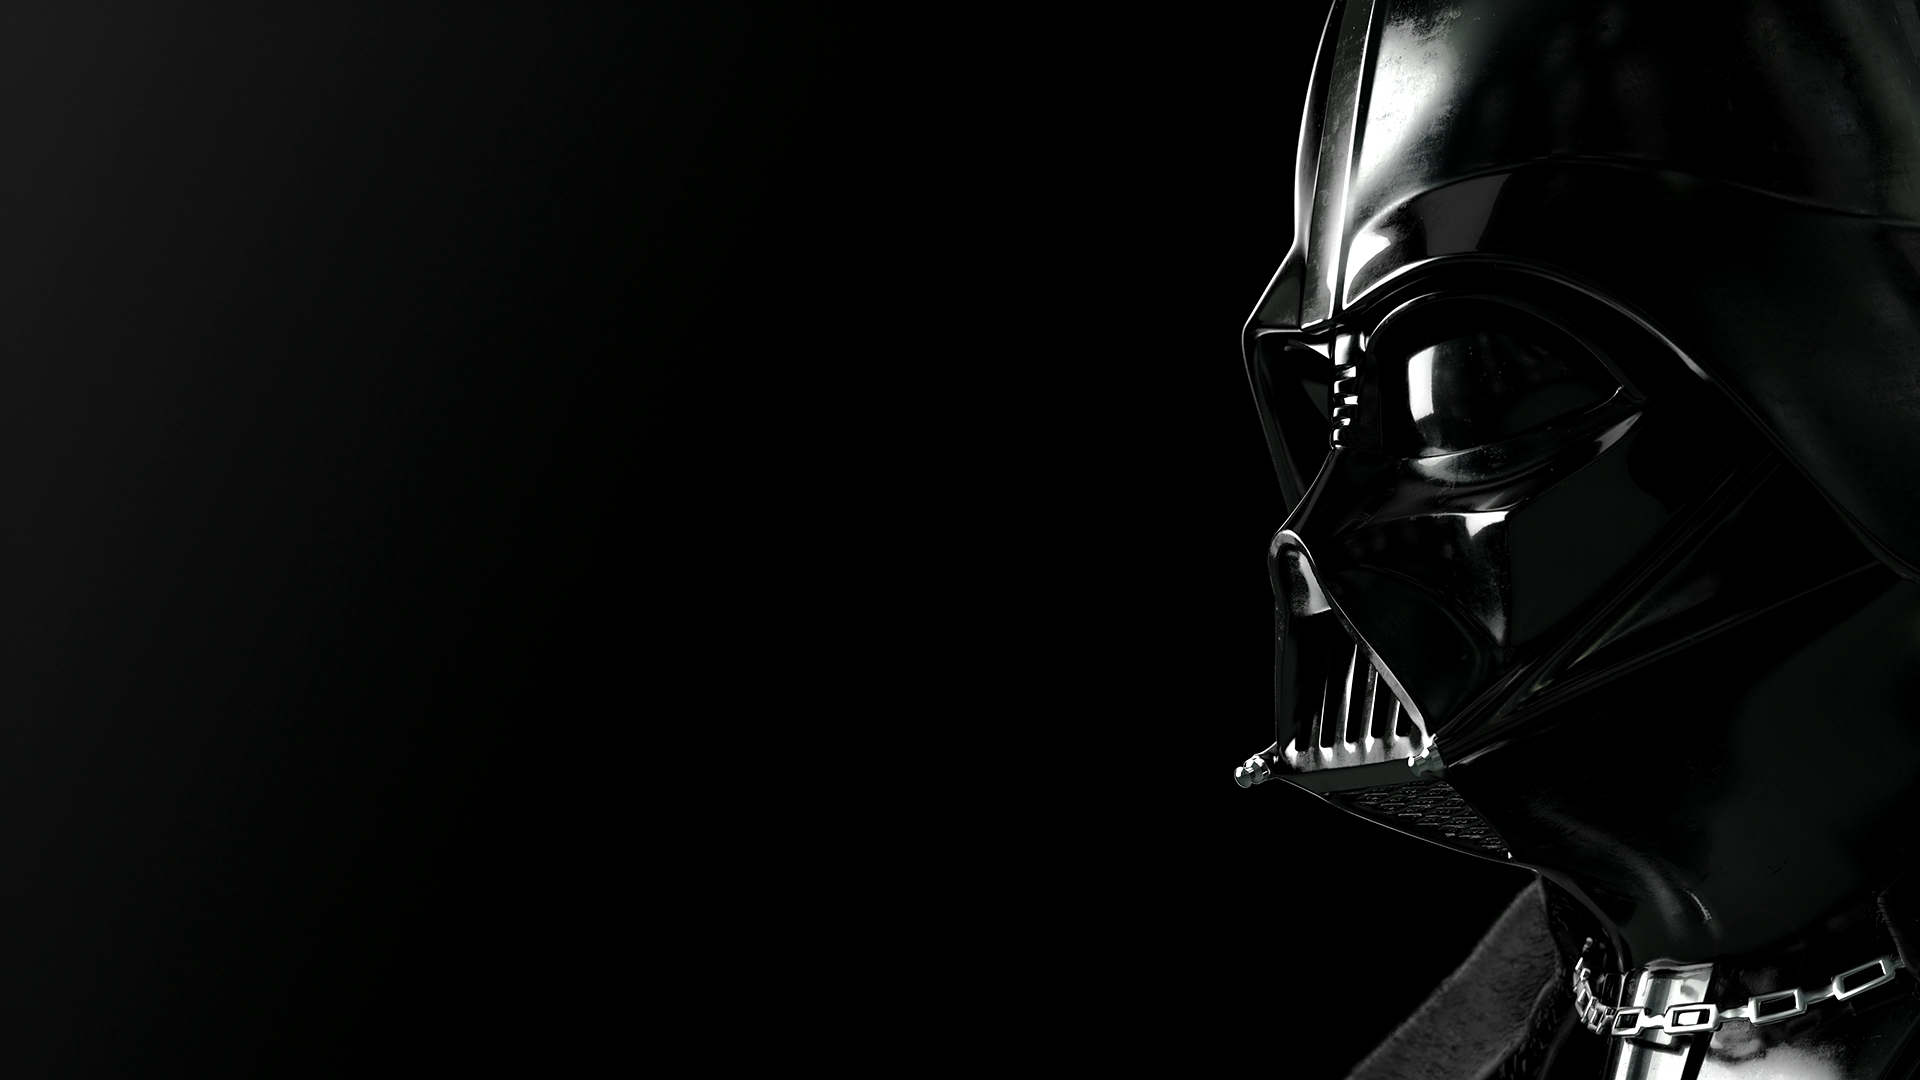 darth vader hd wallpapers backgrounds wallpaper | 3d wallpapers